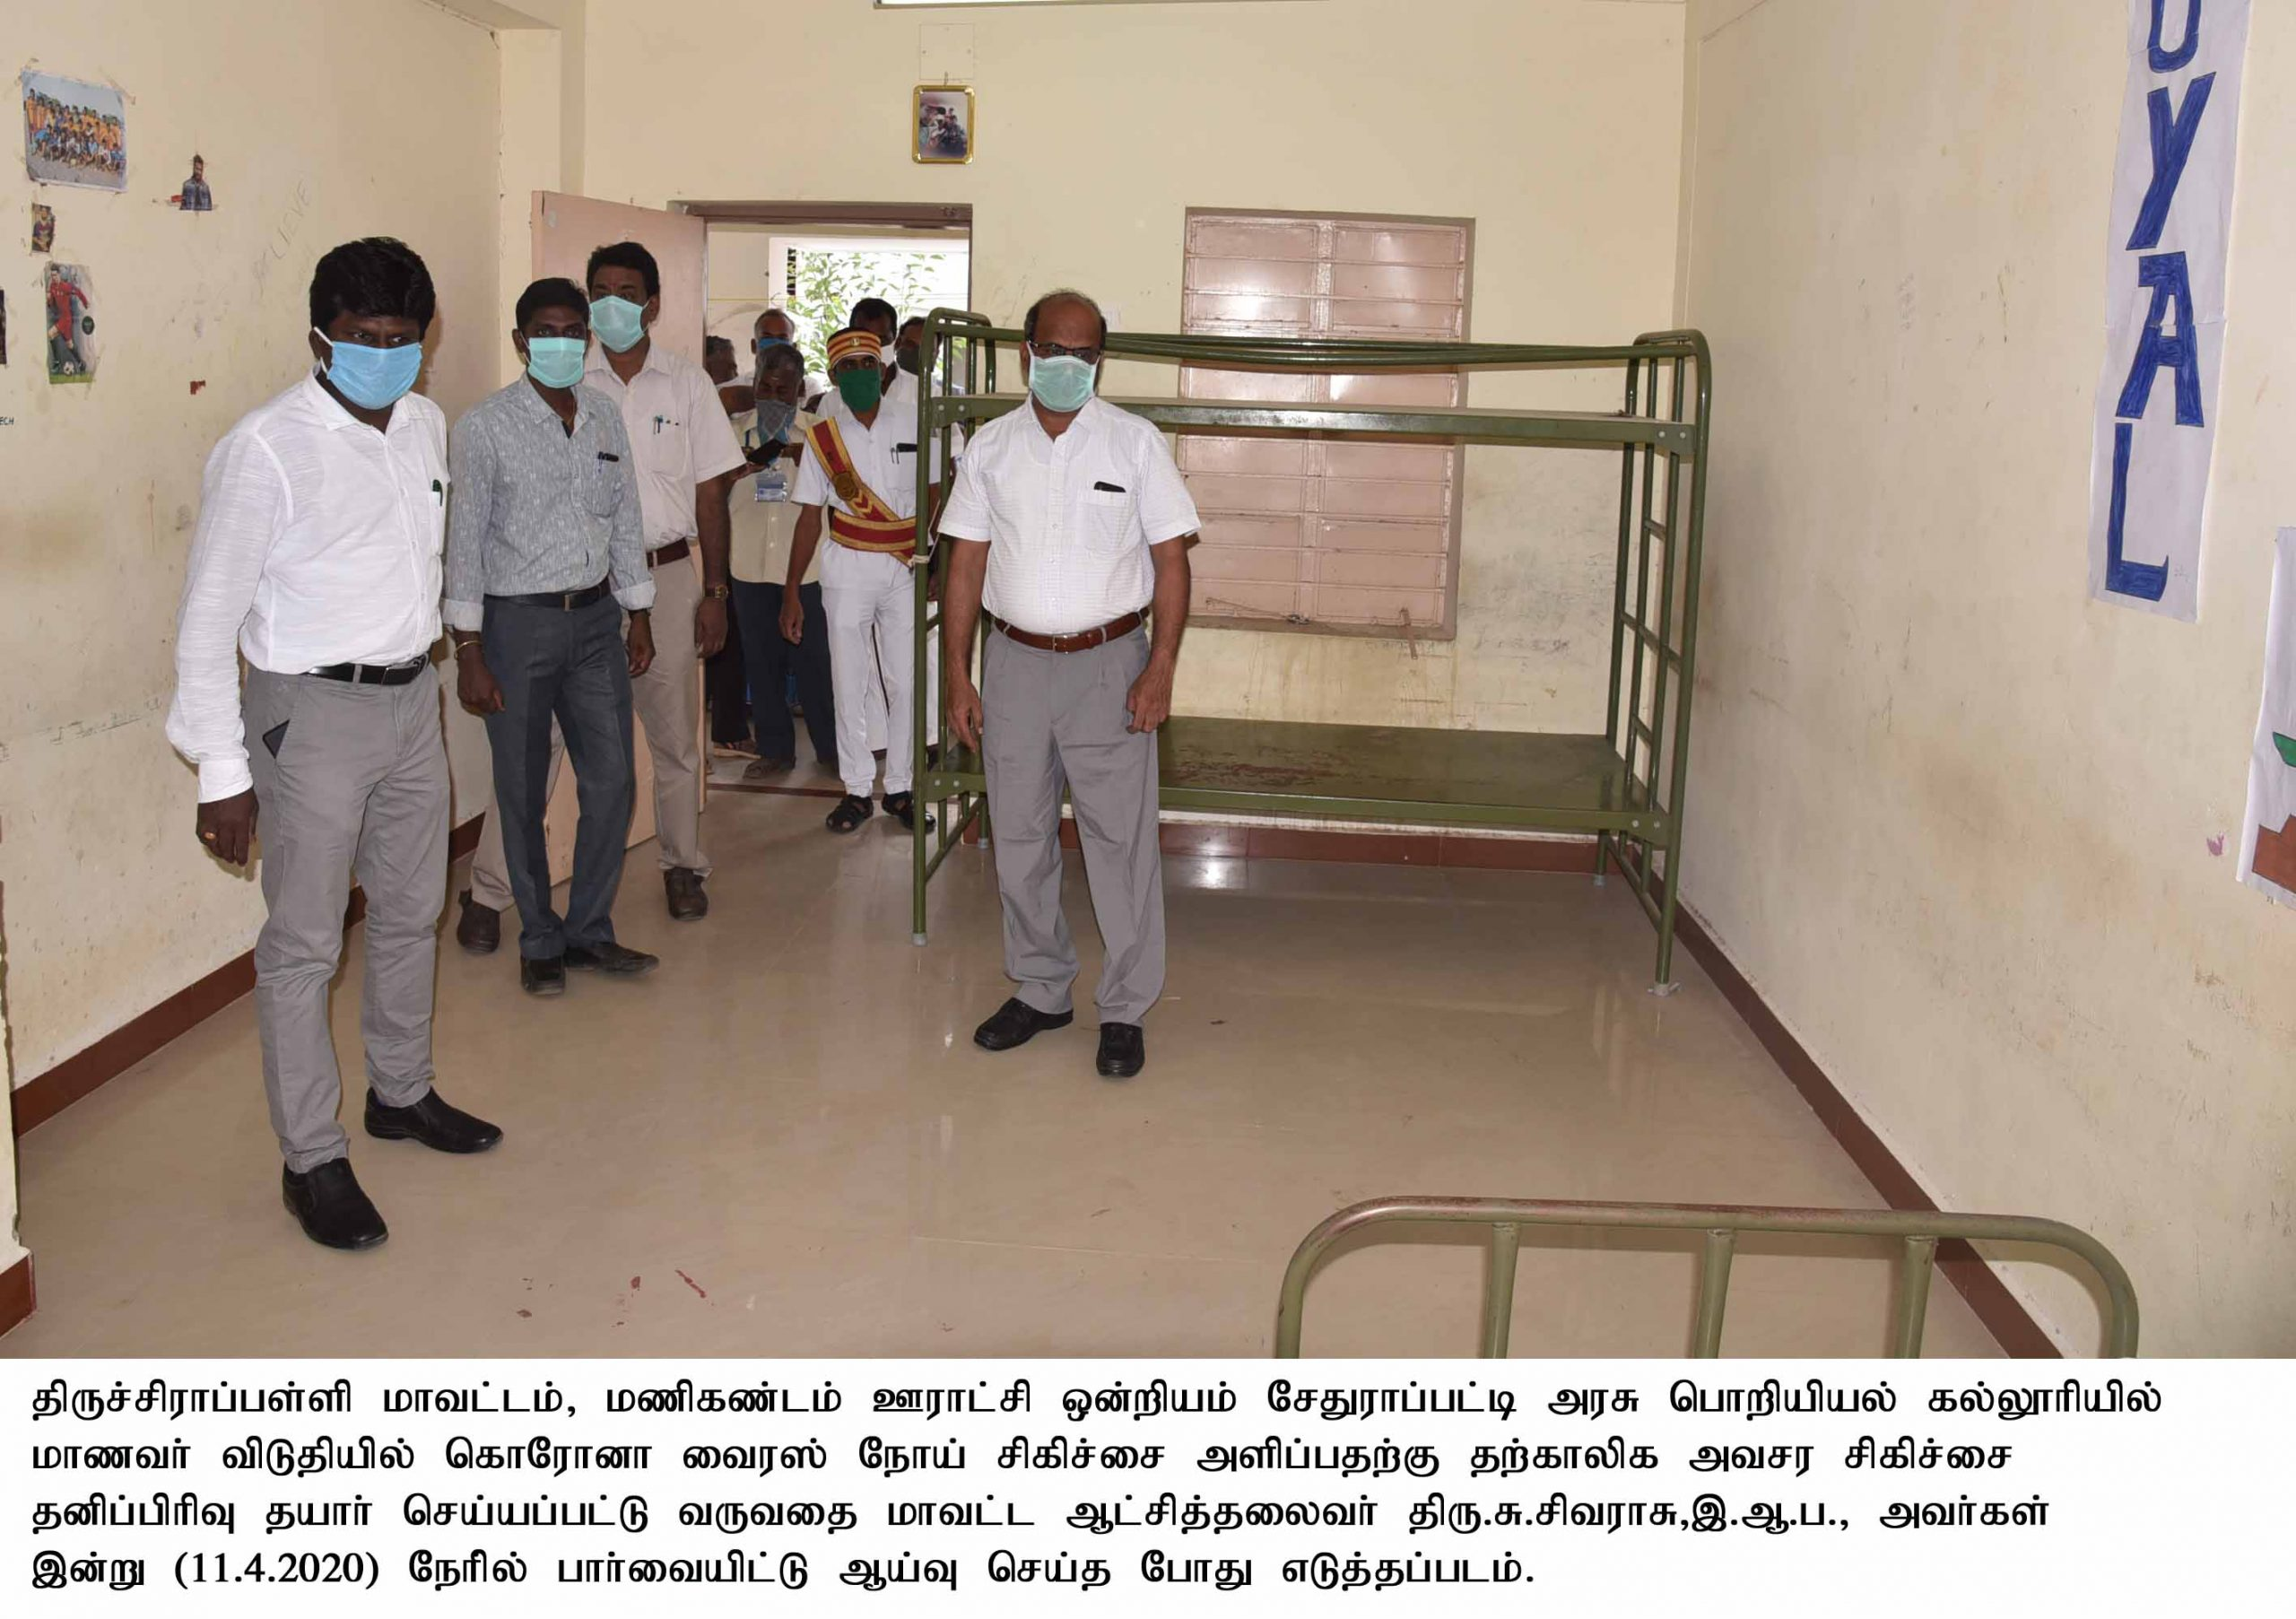 District Collector inspected the Temporary Isolation ward arrangements at Sethurapatti Govt. Engineering College